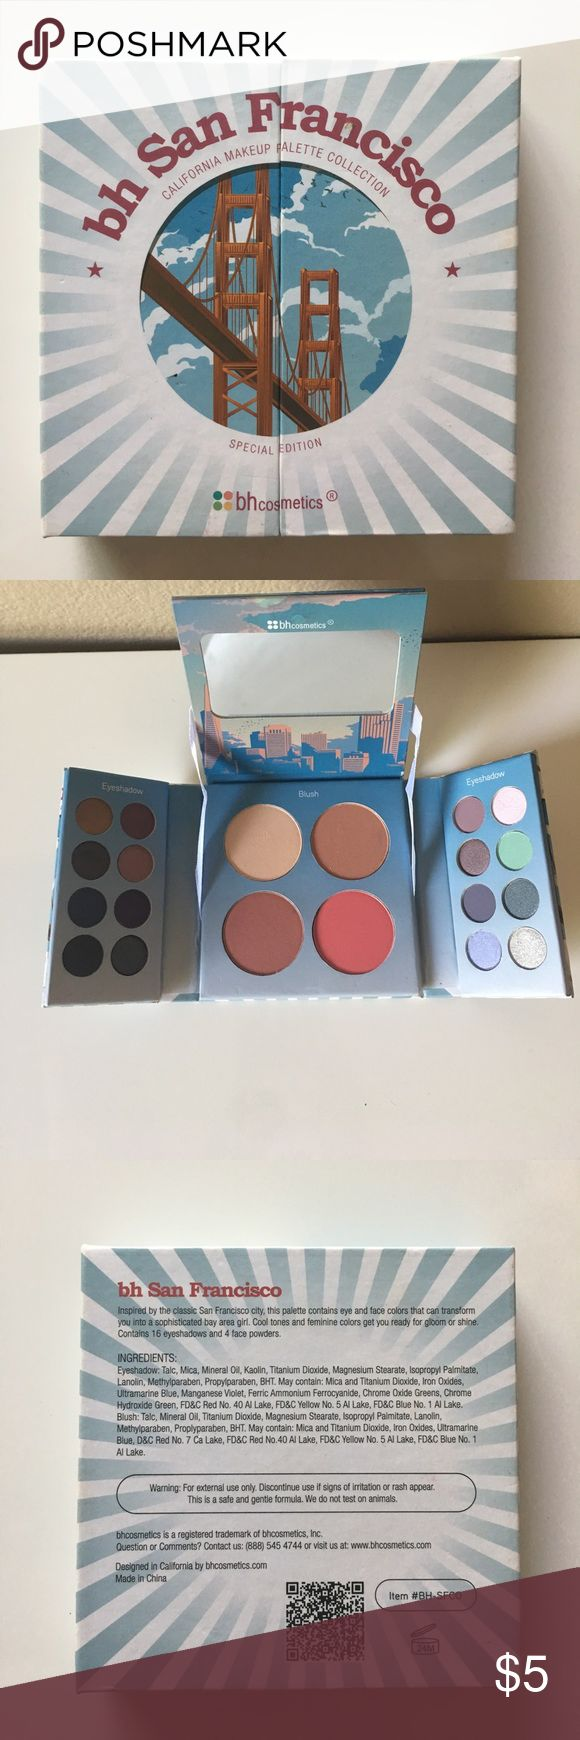 bh San Francisco make up pallete Cute little palette comes with 16 eyeshadows, two blushes highlighter and bronzer. Only swatched, never used. bh cosmetics Makeup